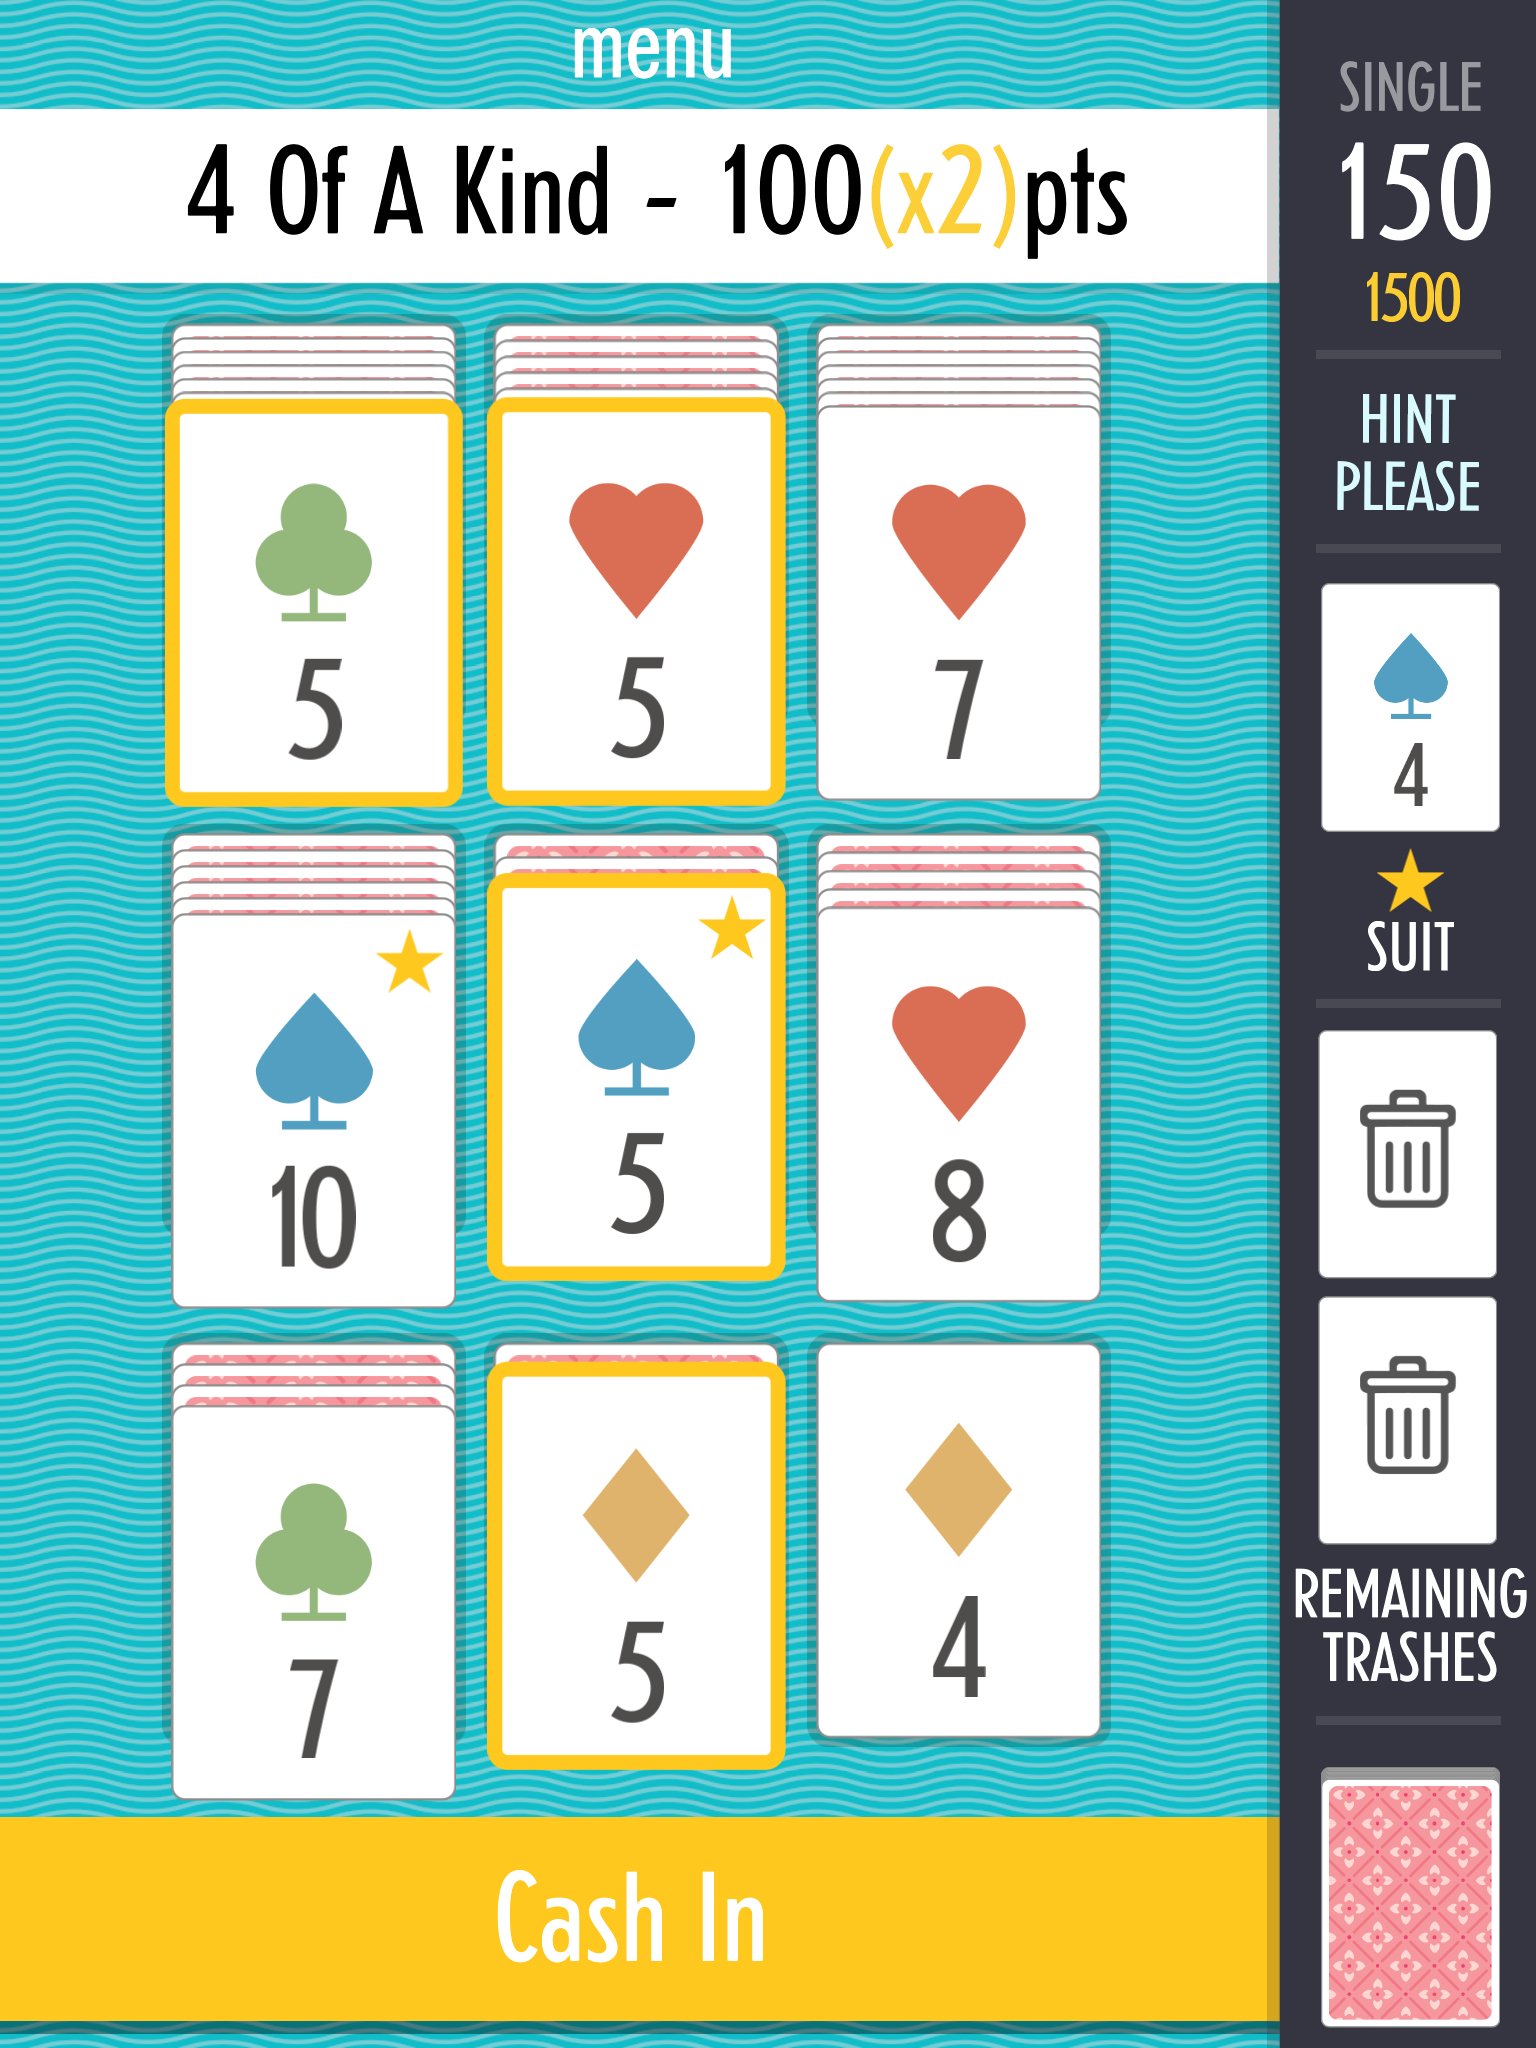 Sage Solitaire - A superb mash-up of solitaire and poker